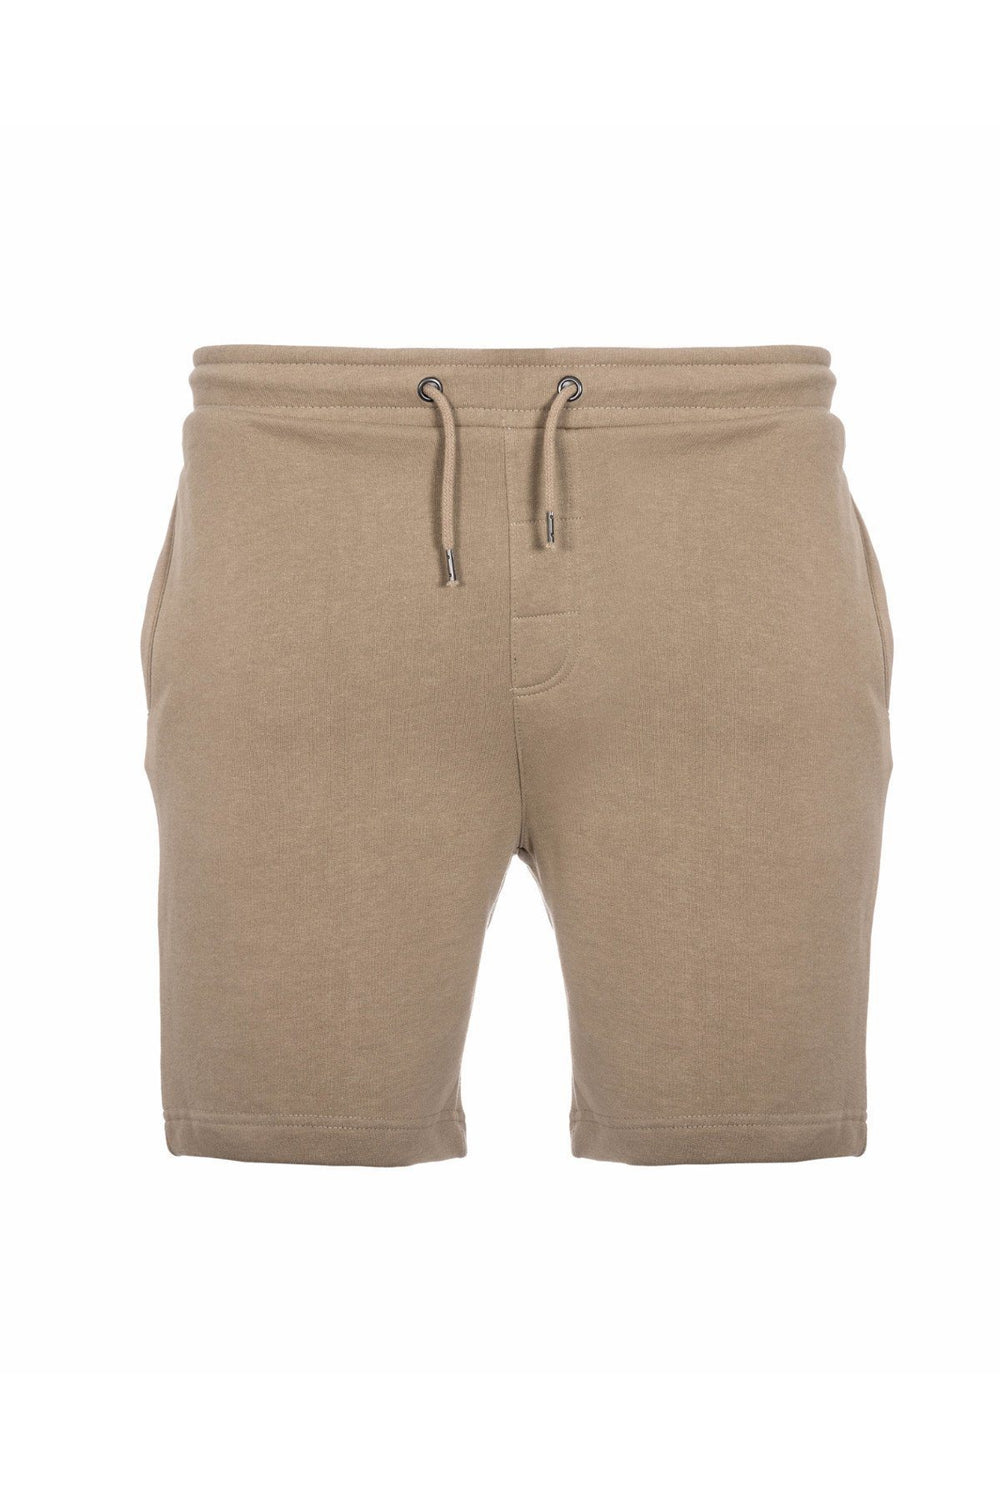 Shorts - YOLC. Sweat Shorts Light Khaki